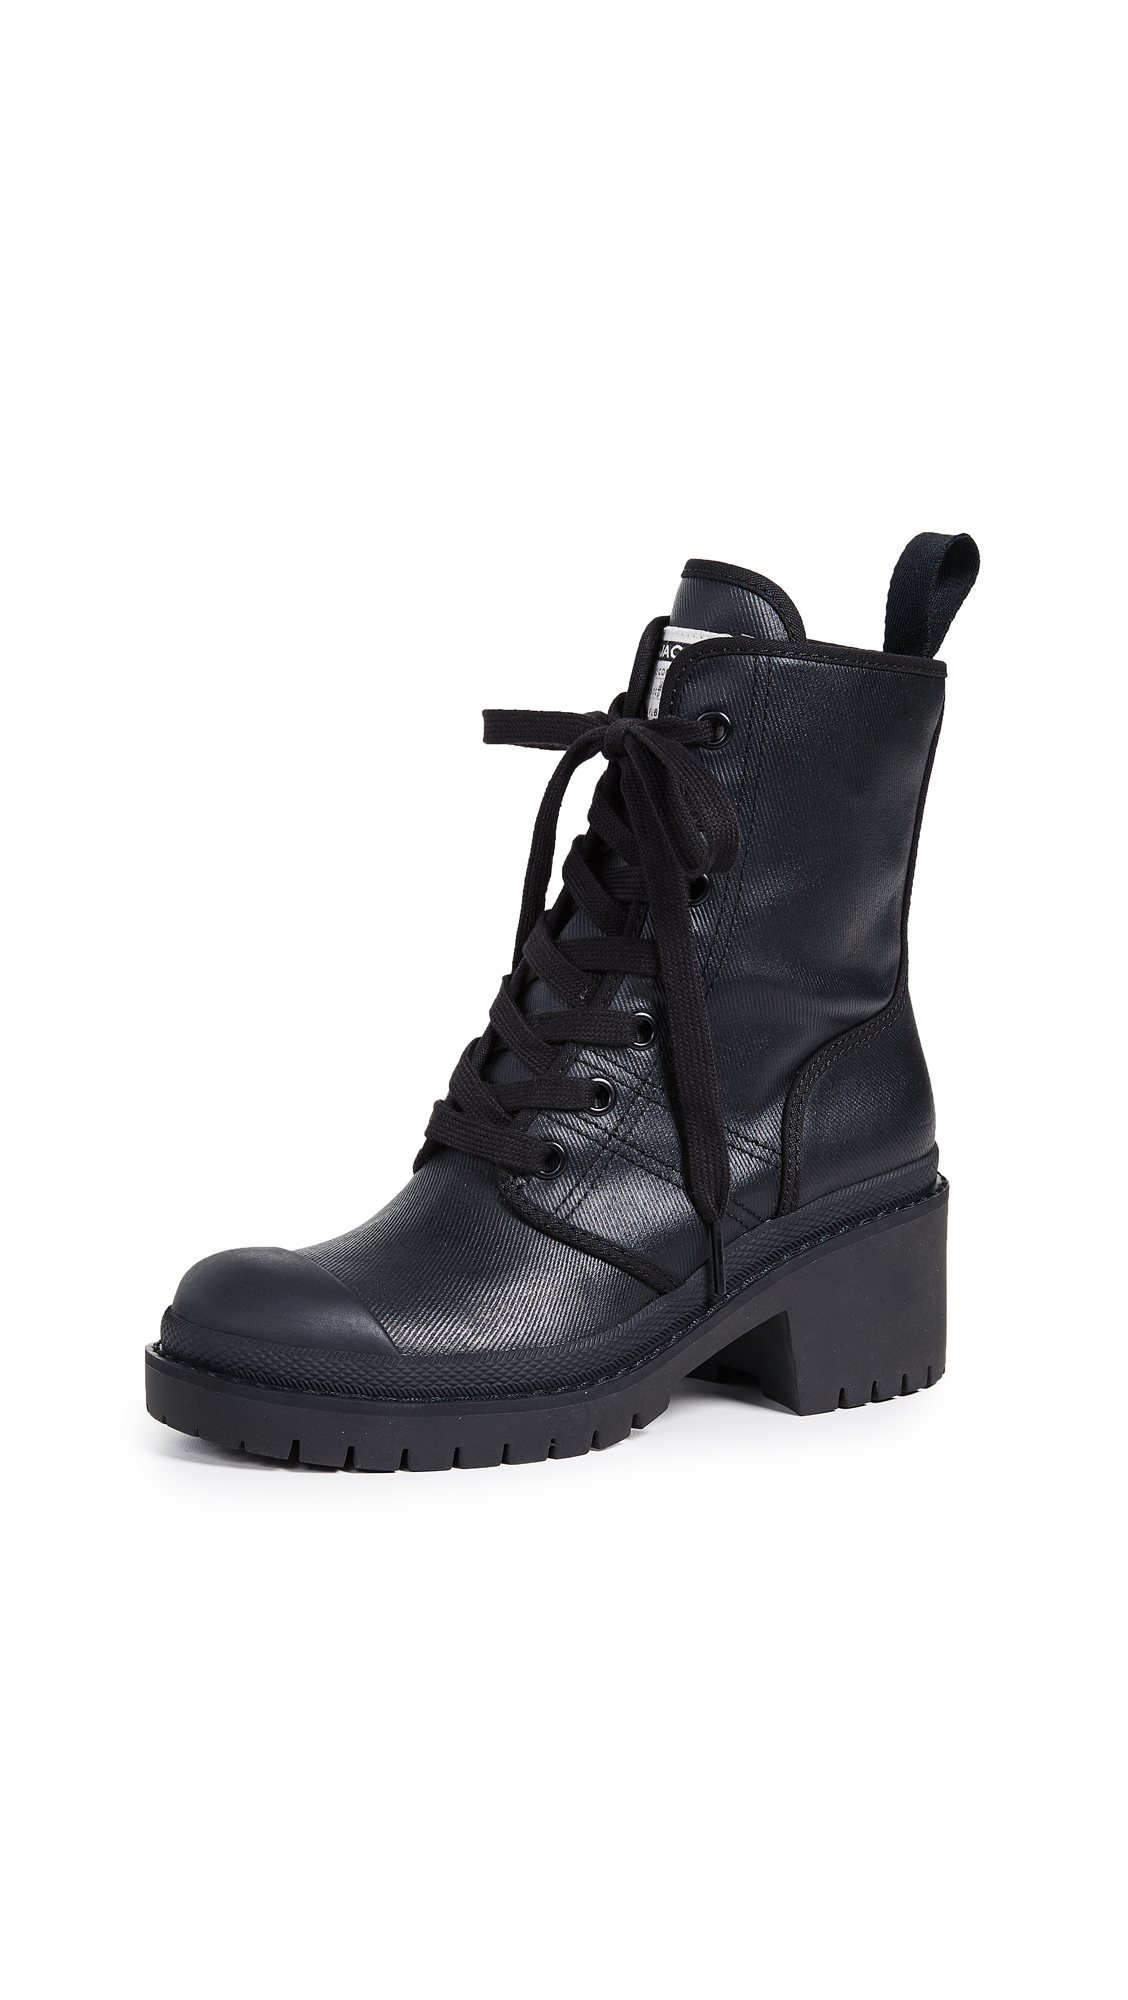 Marc Jacobs Bristol Laced Up Boots - Black